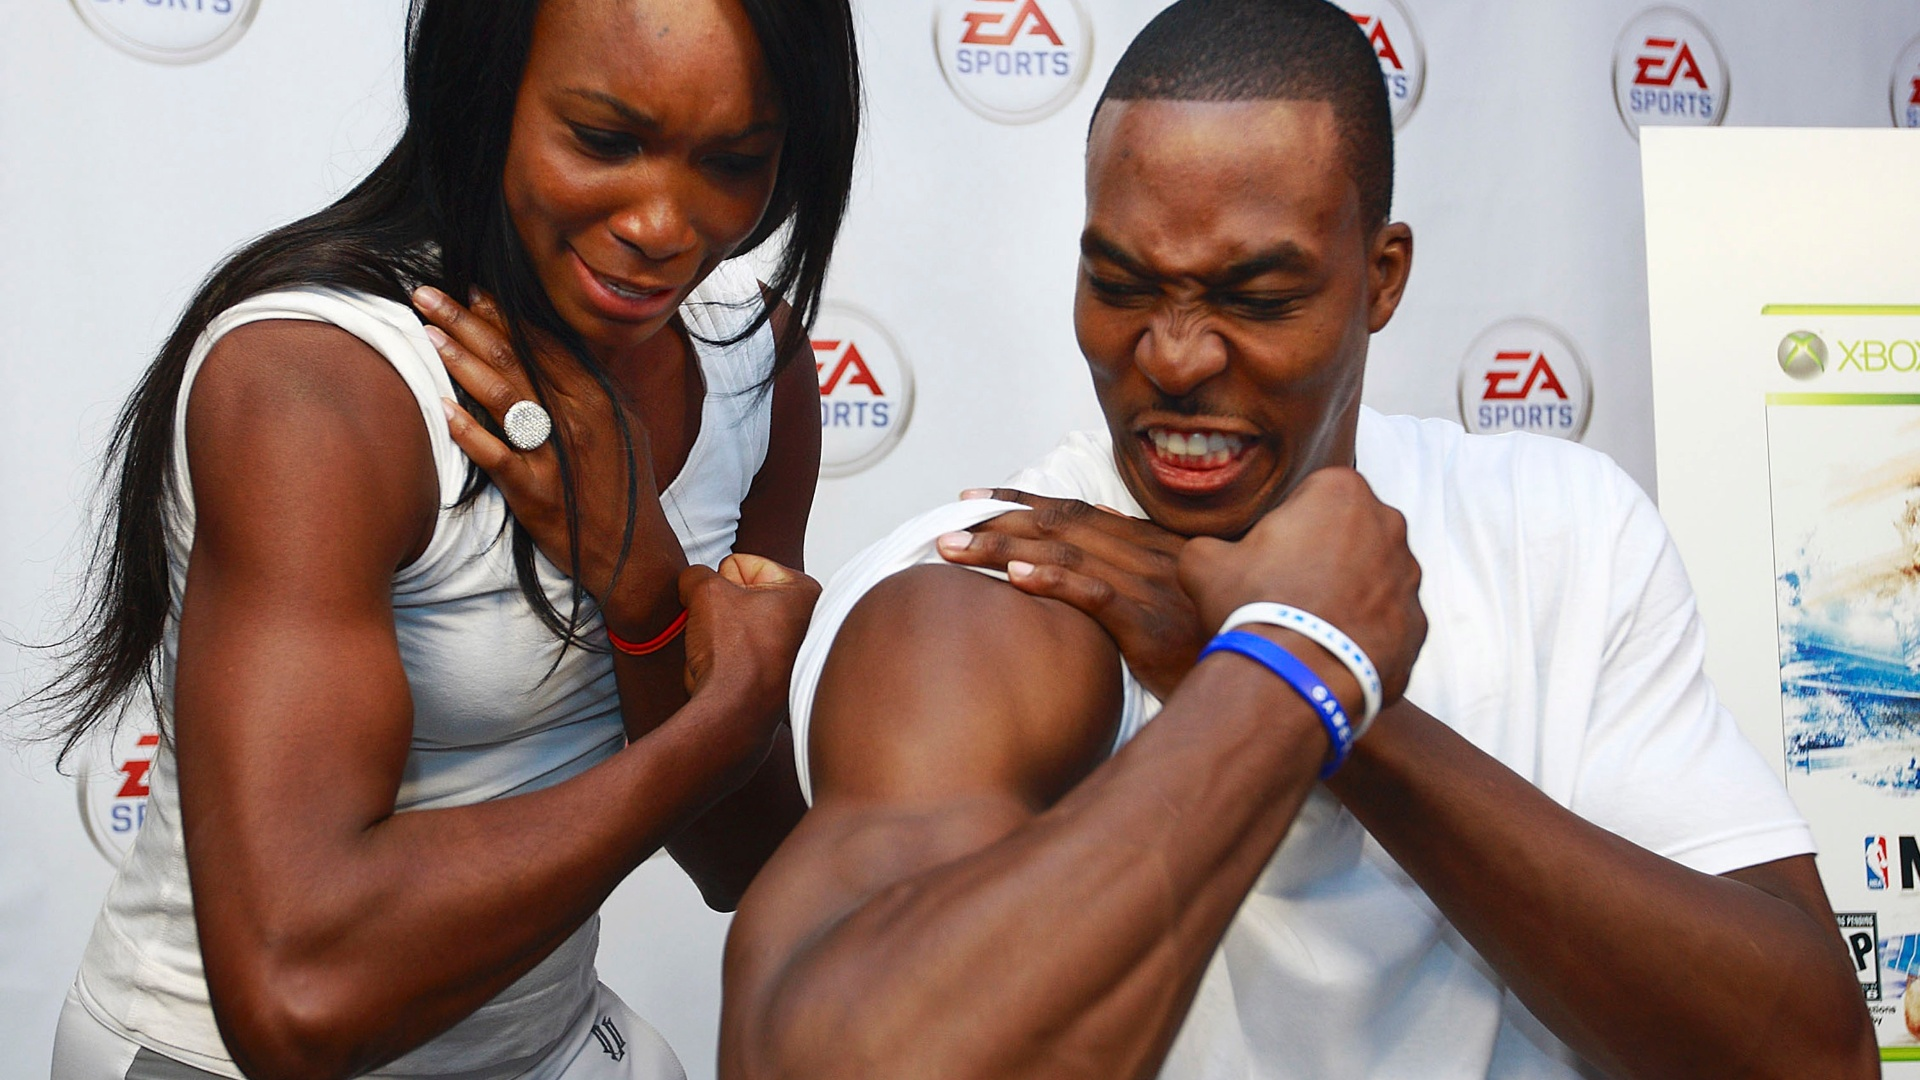 Dwight Howard, da NBA, brinca com a tenista Venus Williams